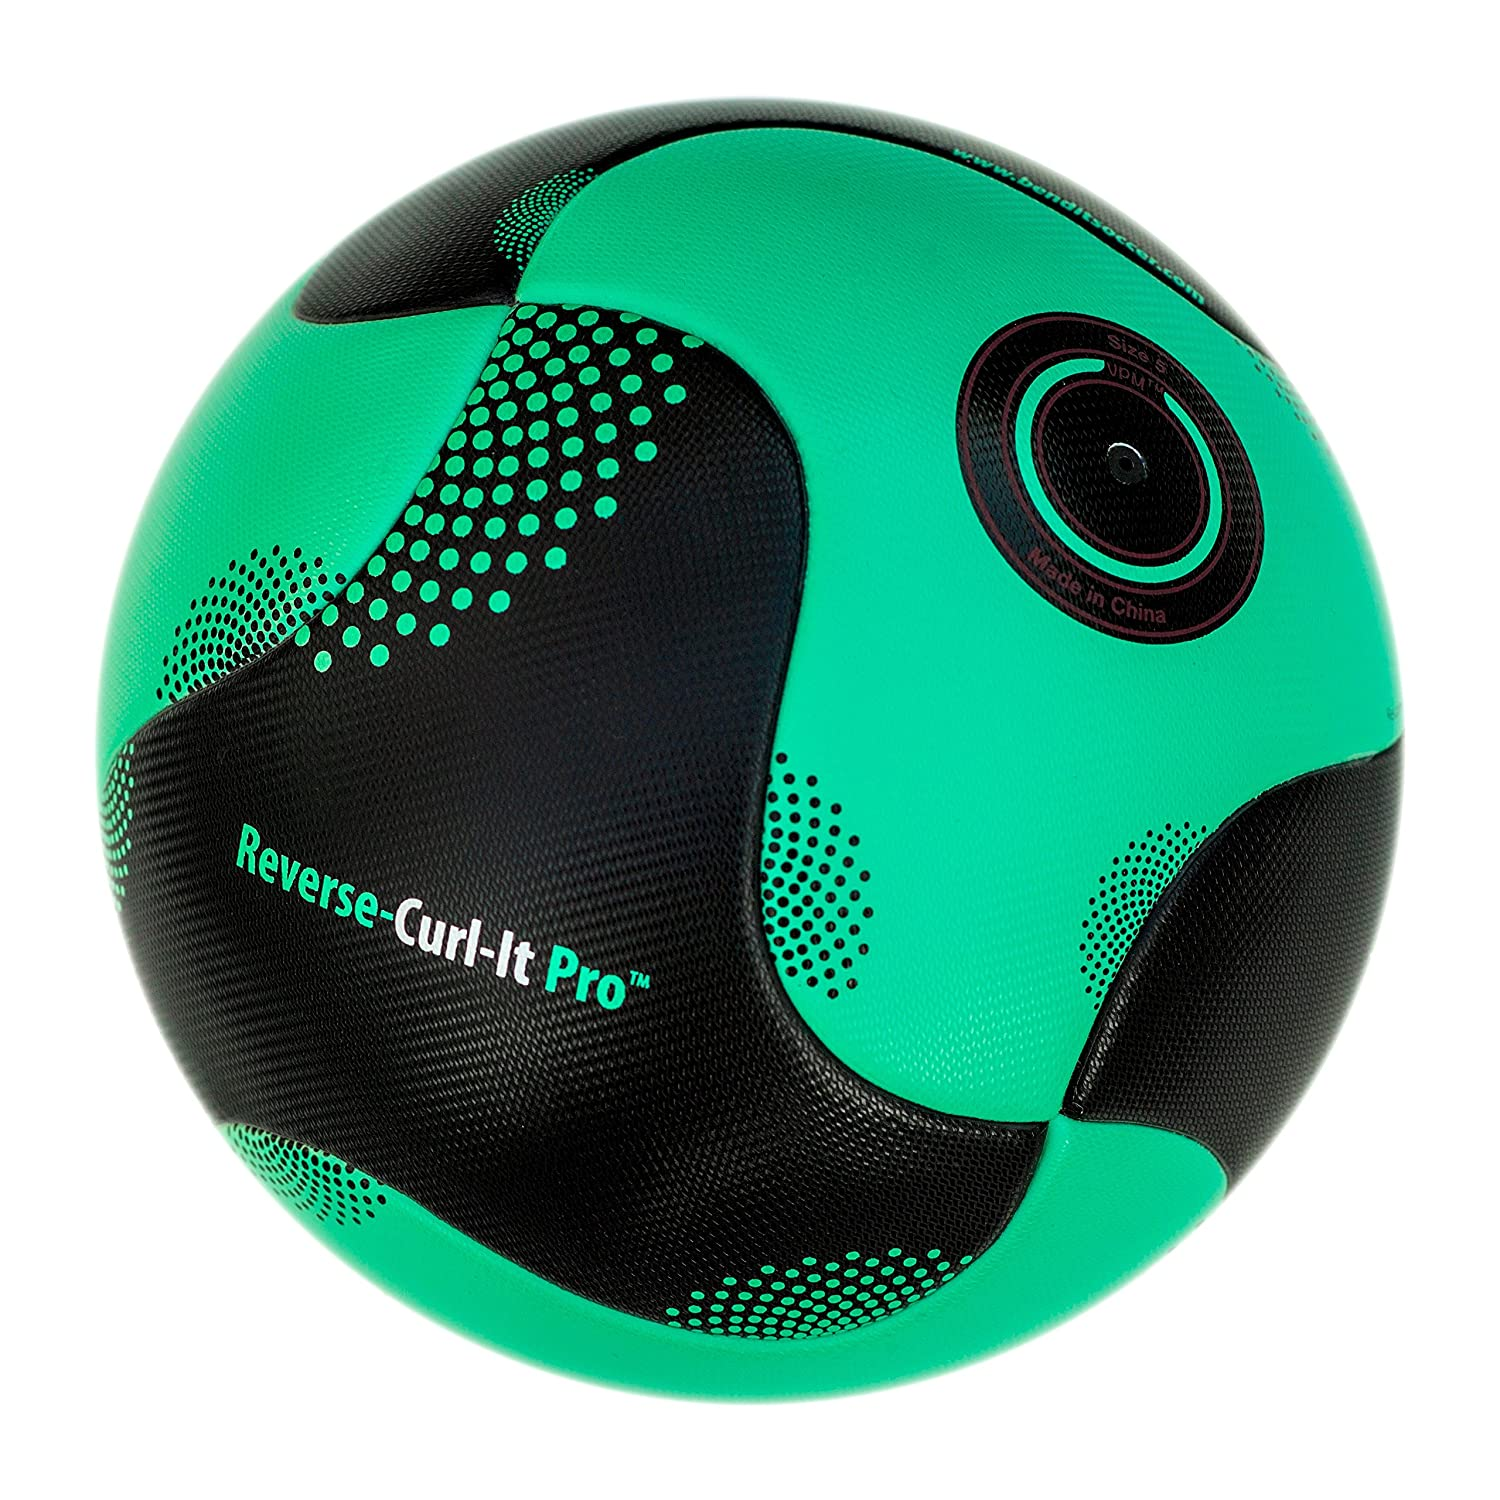 bend-itサッカー、knuckle-it Pro、サッカーボール、Official Match Ball with VPM and VRCテクノロジー B015IK7ERS 5|Green/Black (Reverse-Curl-It Pro) Green/Black (Reverse-Curl-It Pro) 5